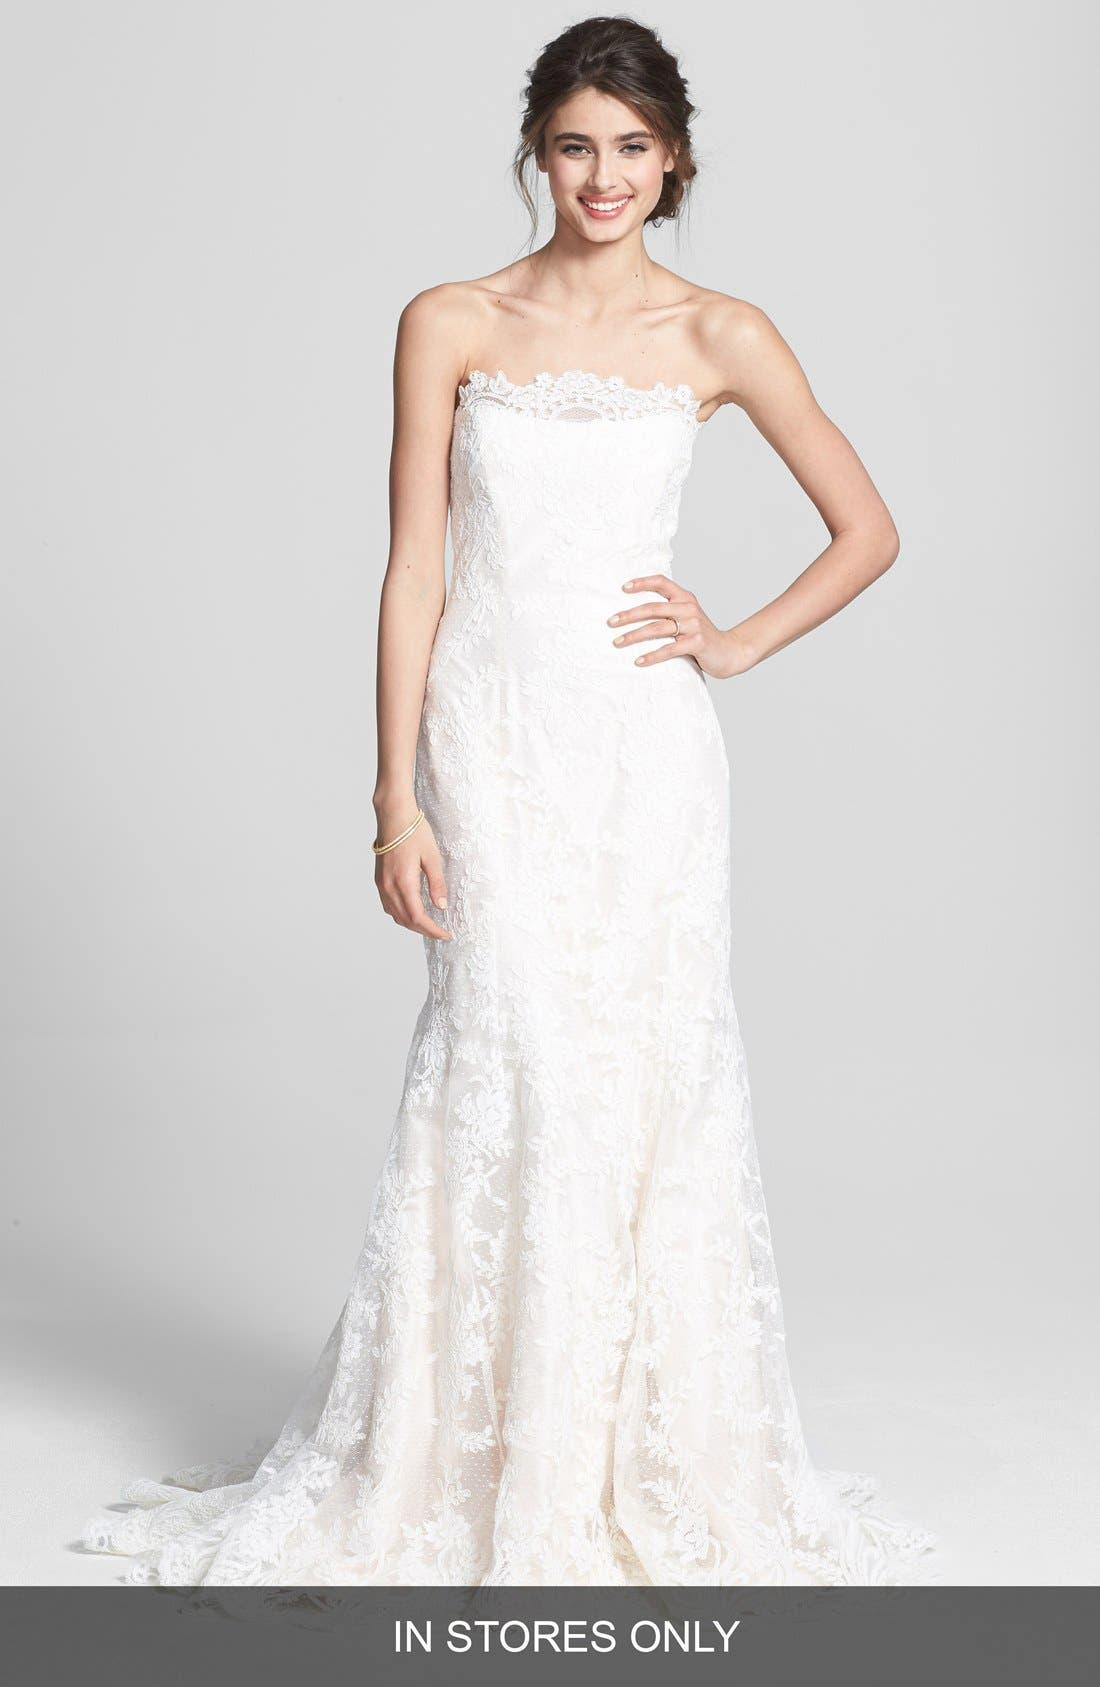 Alternate Image 1 Selected - Legends by Romona Keveza Fluted Lace Silk Gown (In Stores Only)